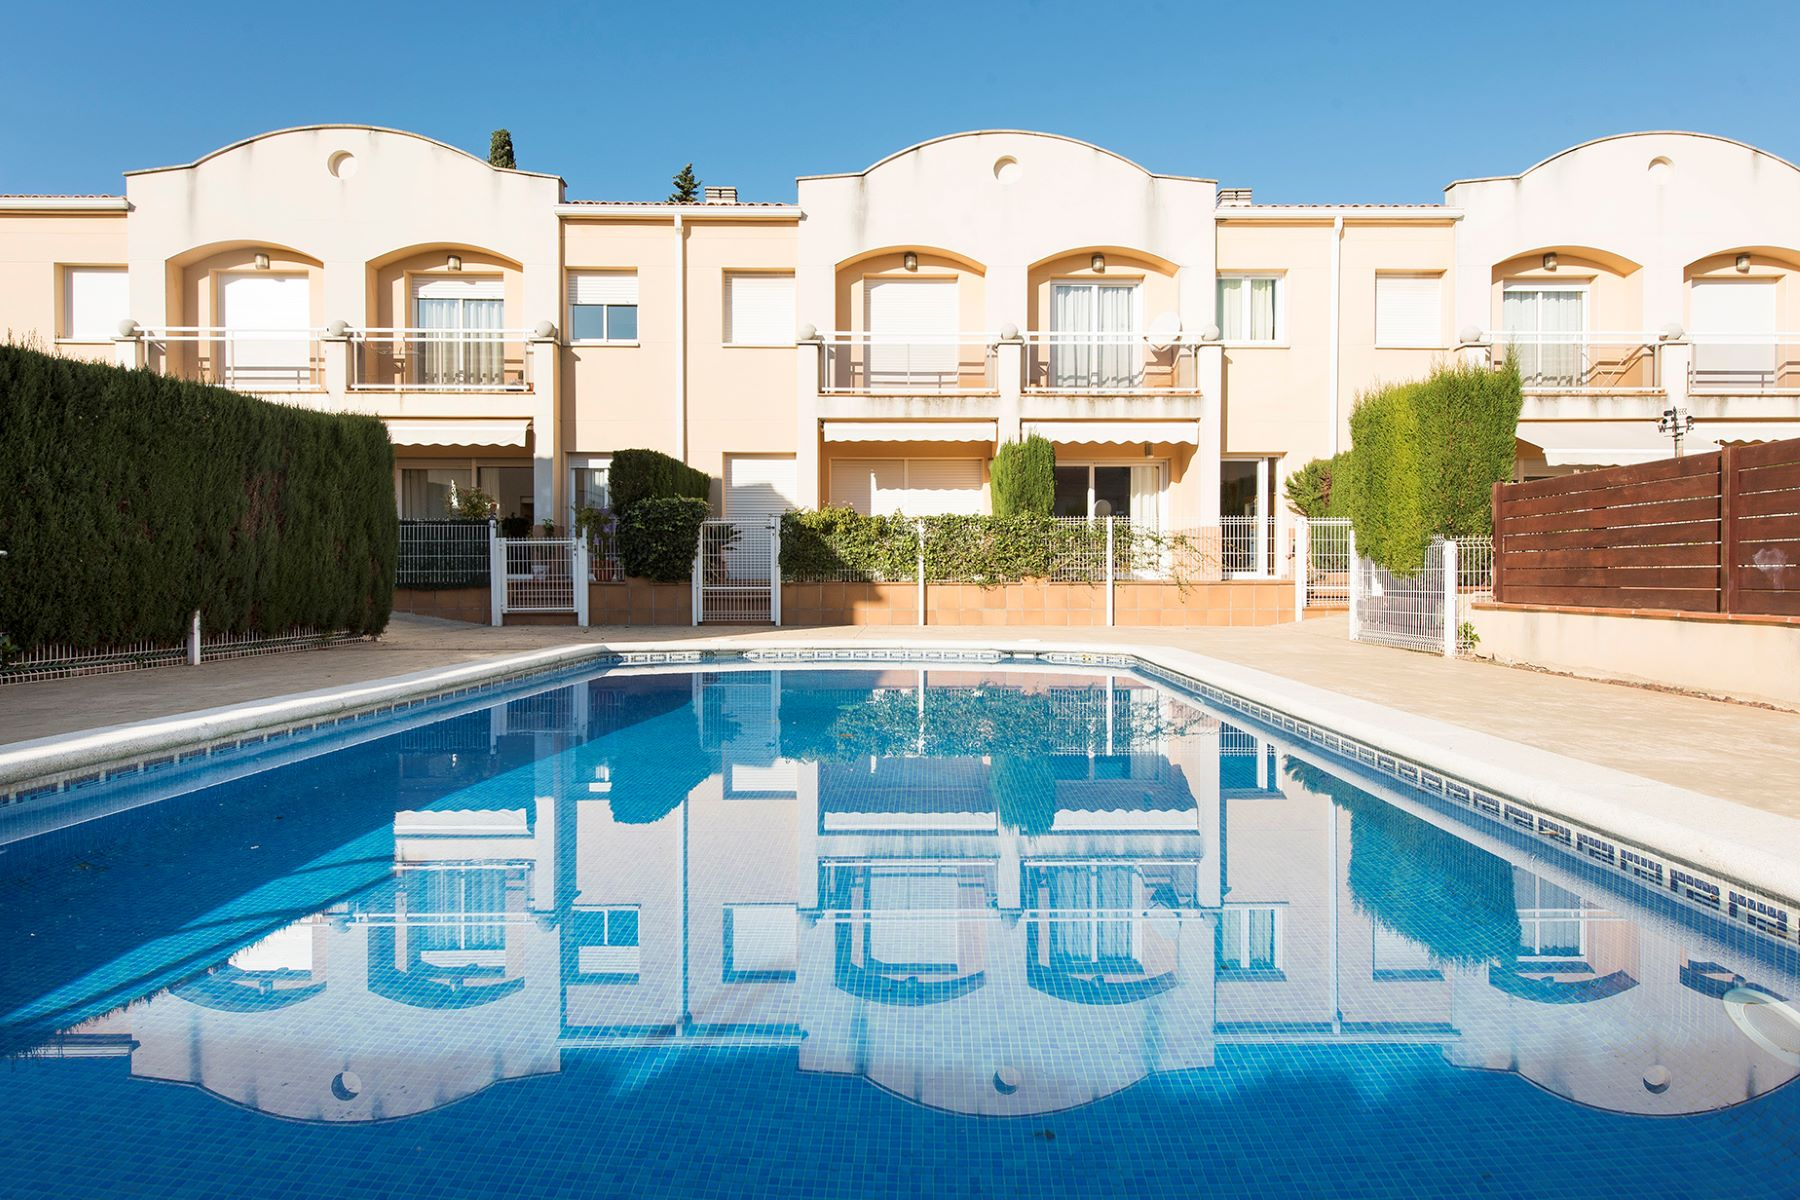 Single Family Home for Sale at Terraced house a few minutes away from the beach of S'Agaró S'Agaro, Costa Brava, 17248 Spain